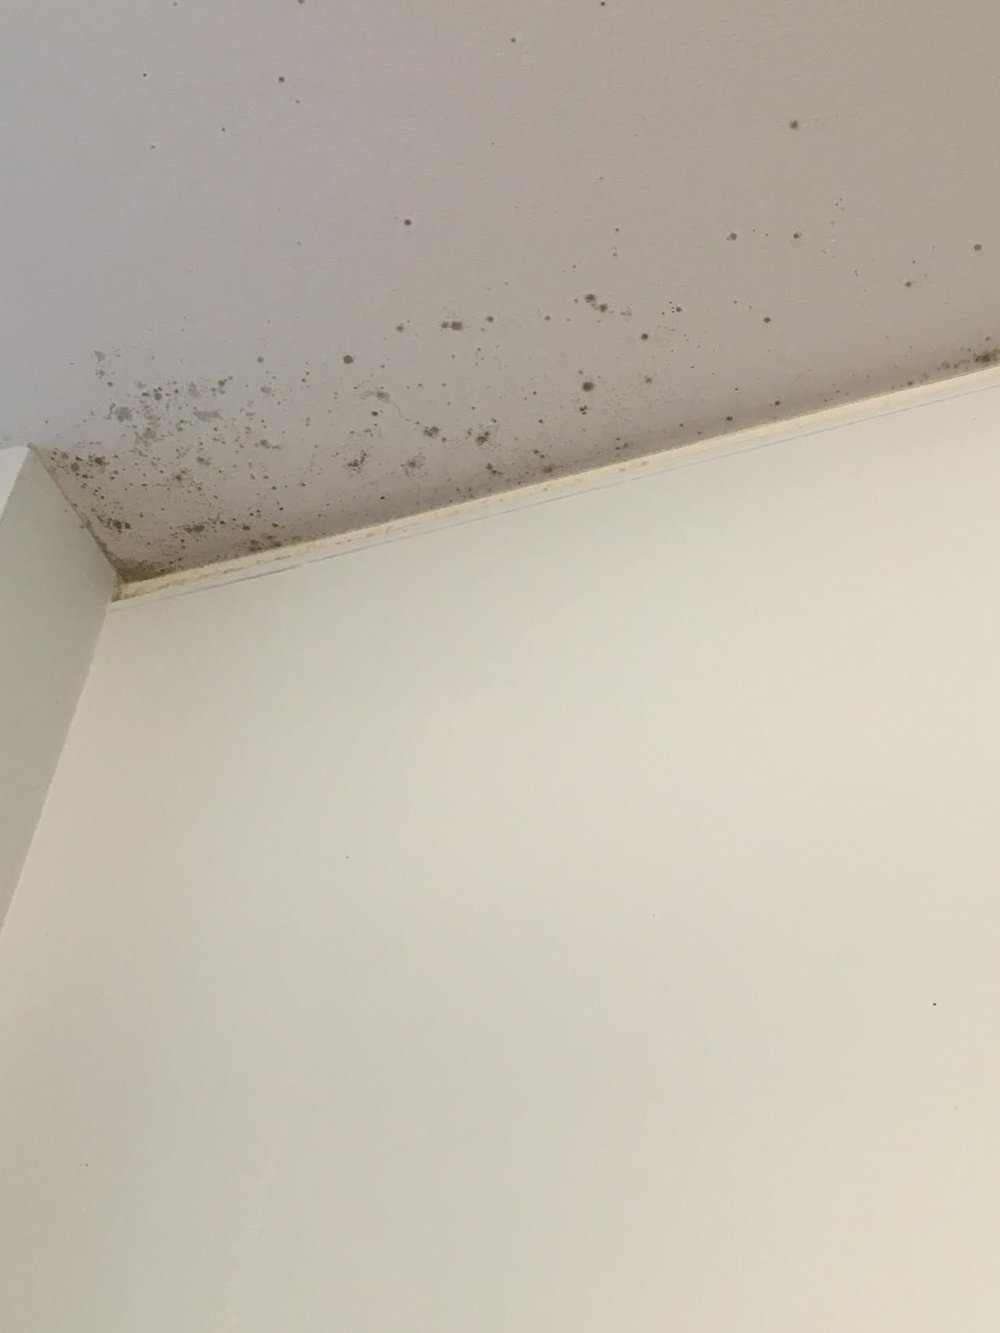 Since the beginning of the semester, multiple complaints have been filed about mold in undergraduate residence halls.  Photo courtesy of an anonymous resident.